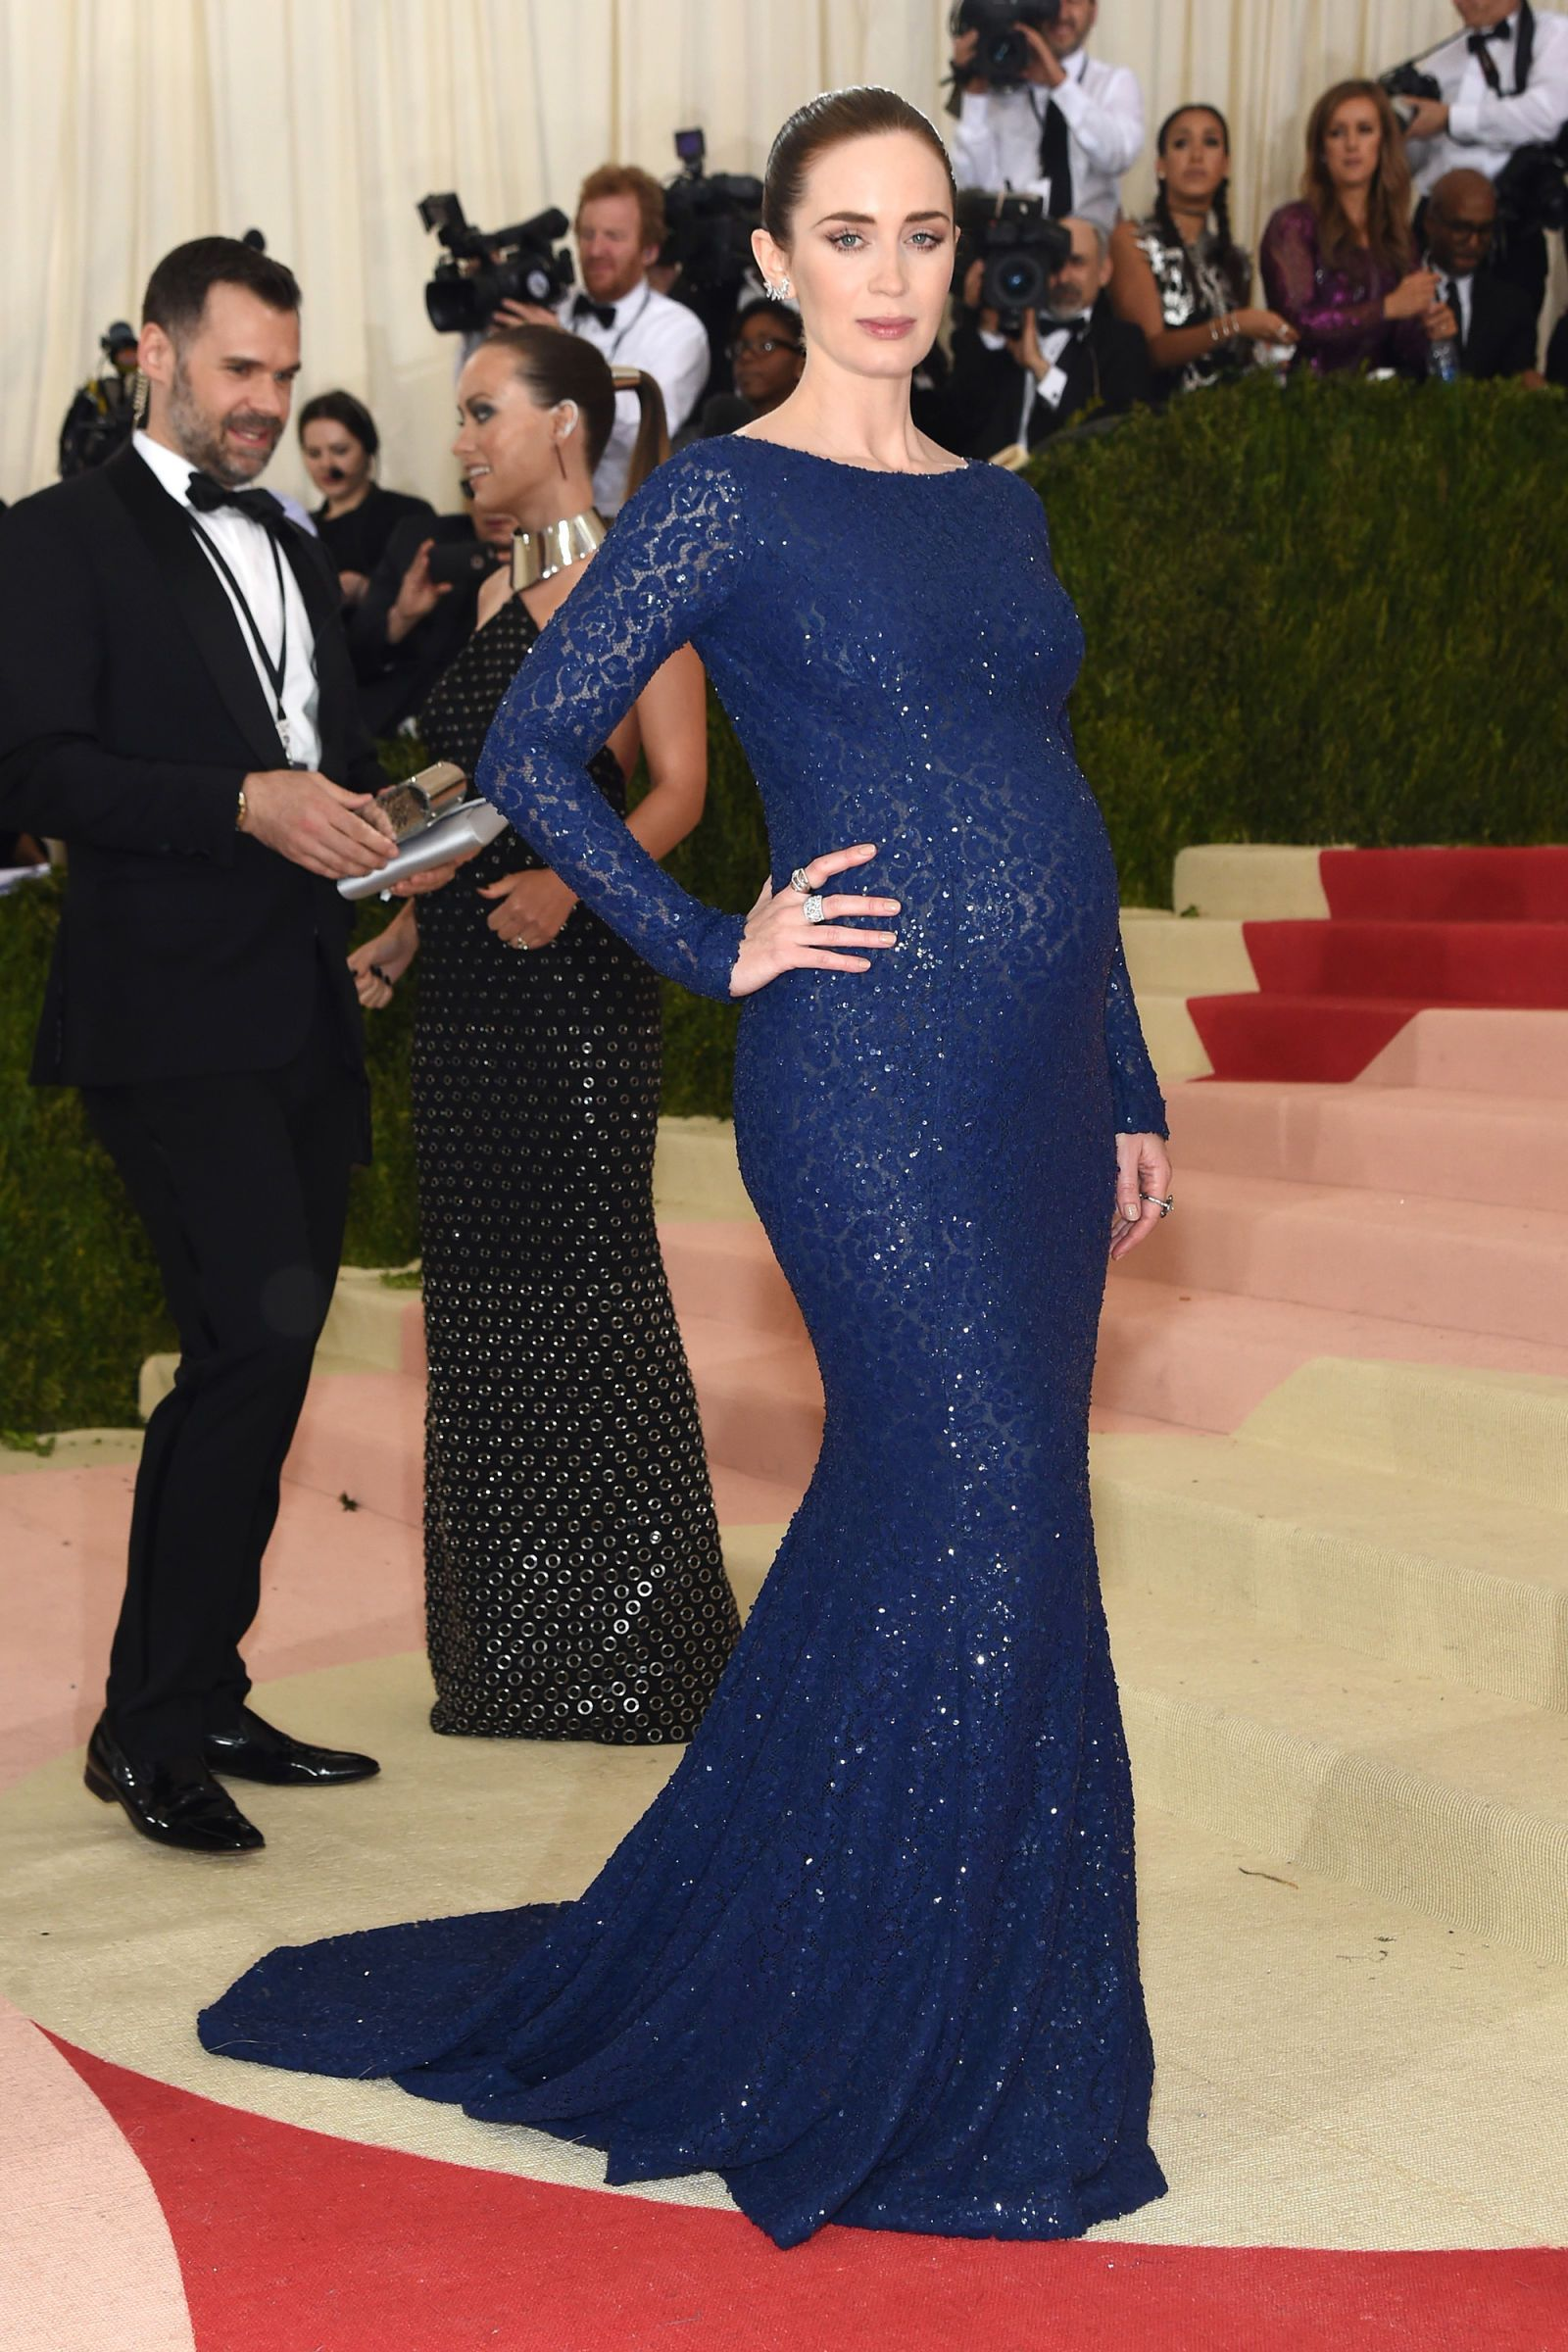 The Best Looks from the Met Gala Wedding gowns Pinterest